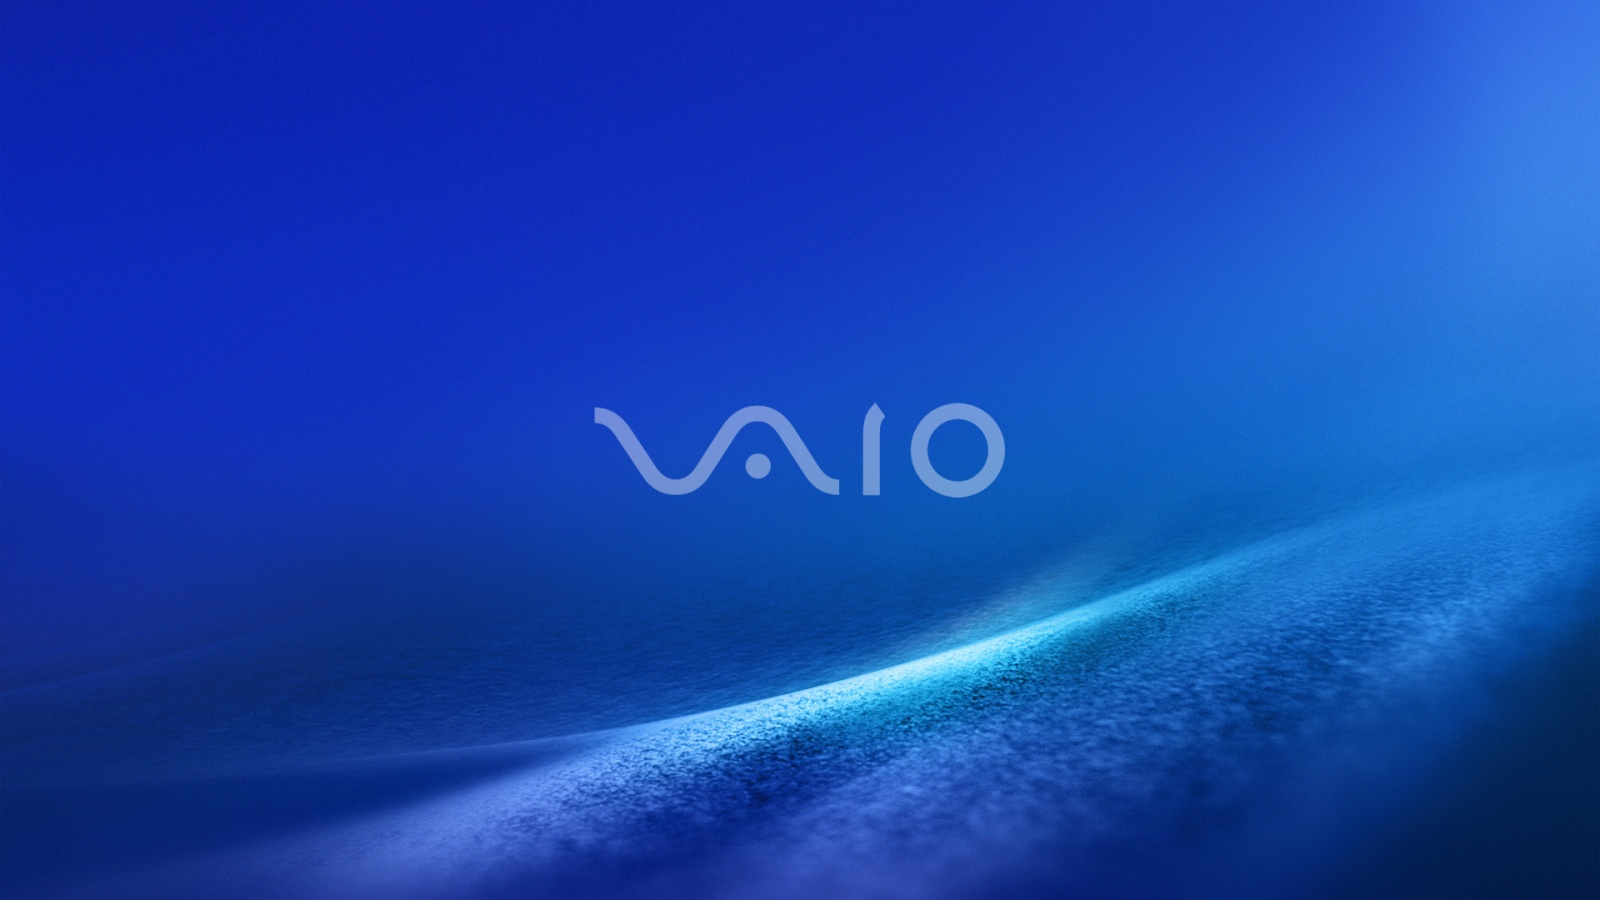 Sony Vaio Wallpaper Or Themes: Sony Vaio Backgrounds Wallpapers